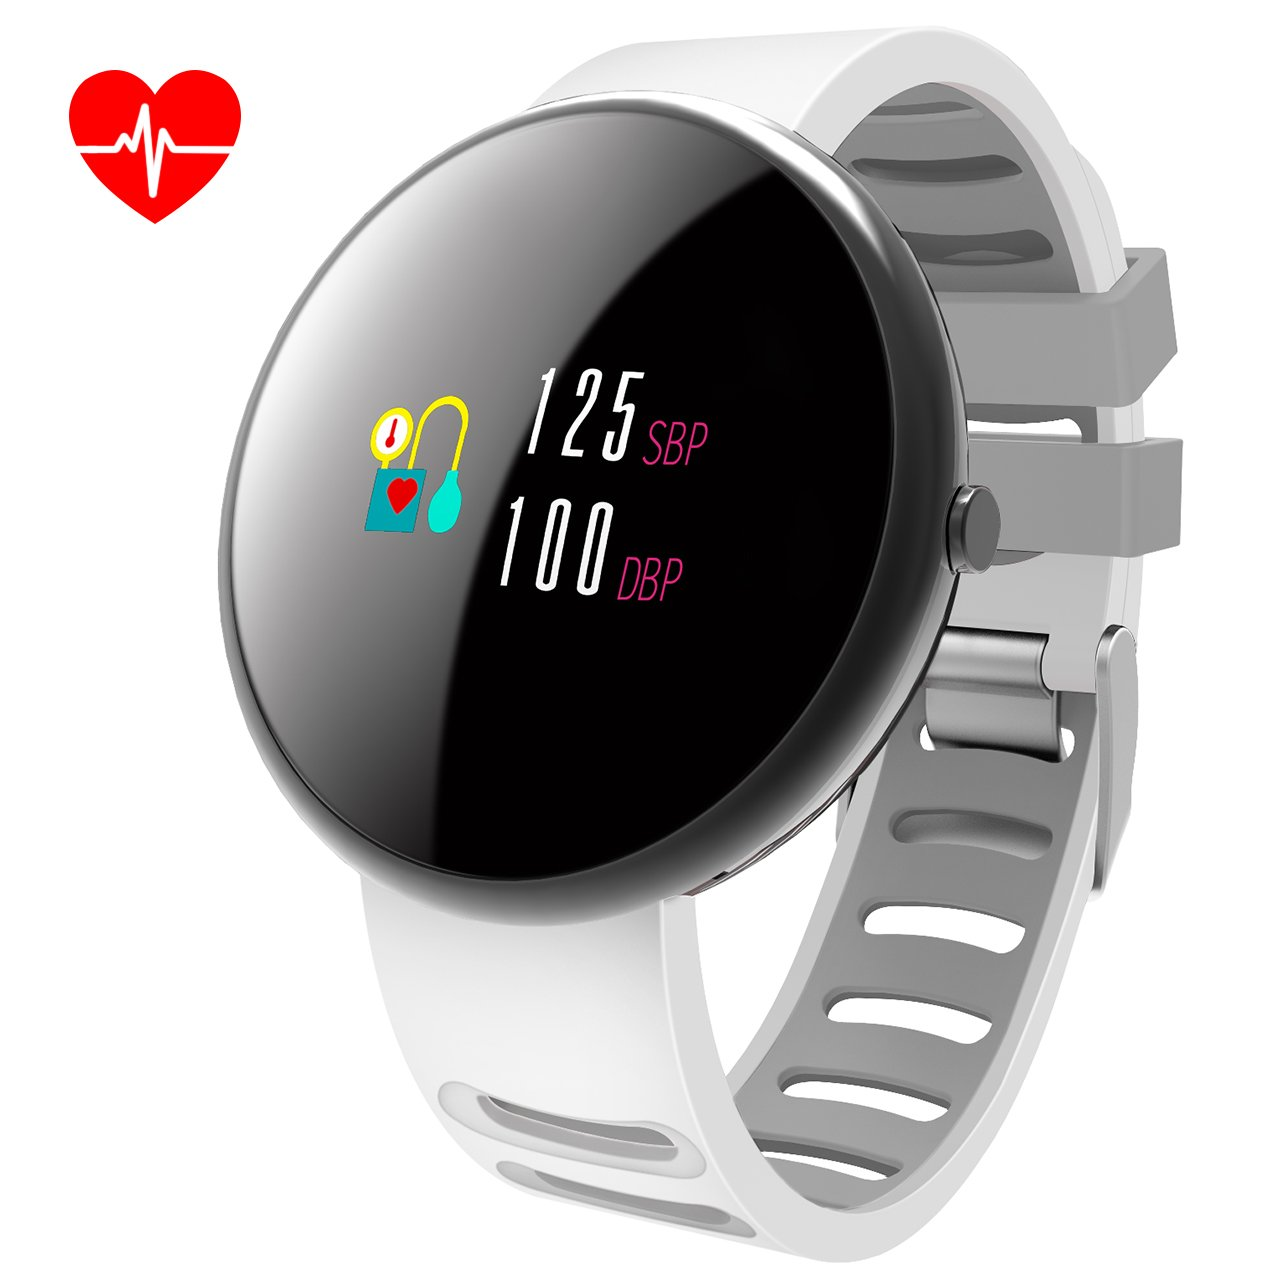 COSSCCI Smart Watches Men Women Fitness Tracker with Heart Rate Monitor,IP67 Waterproof Activity Tracker with Calorie Pedometer Sleep Monitor for Android iPhone (White)